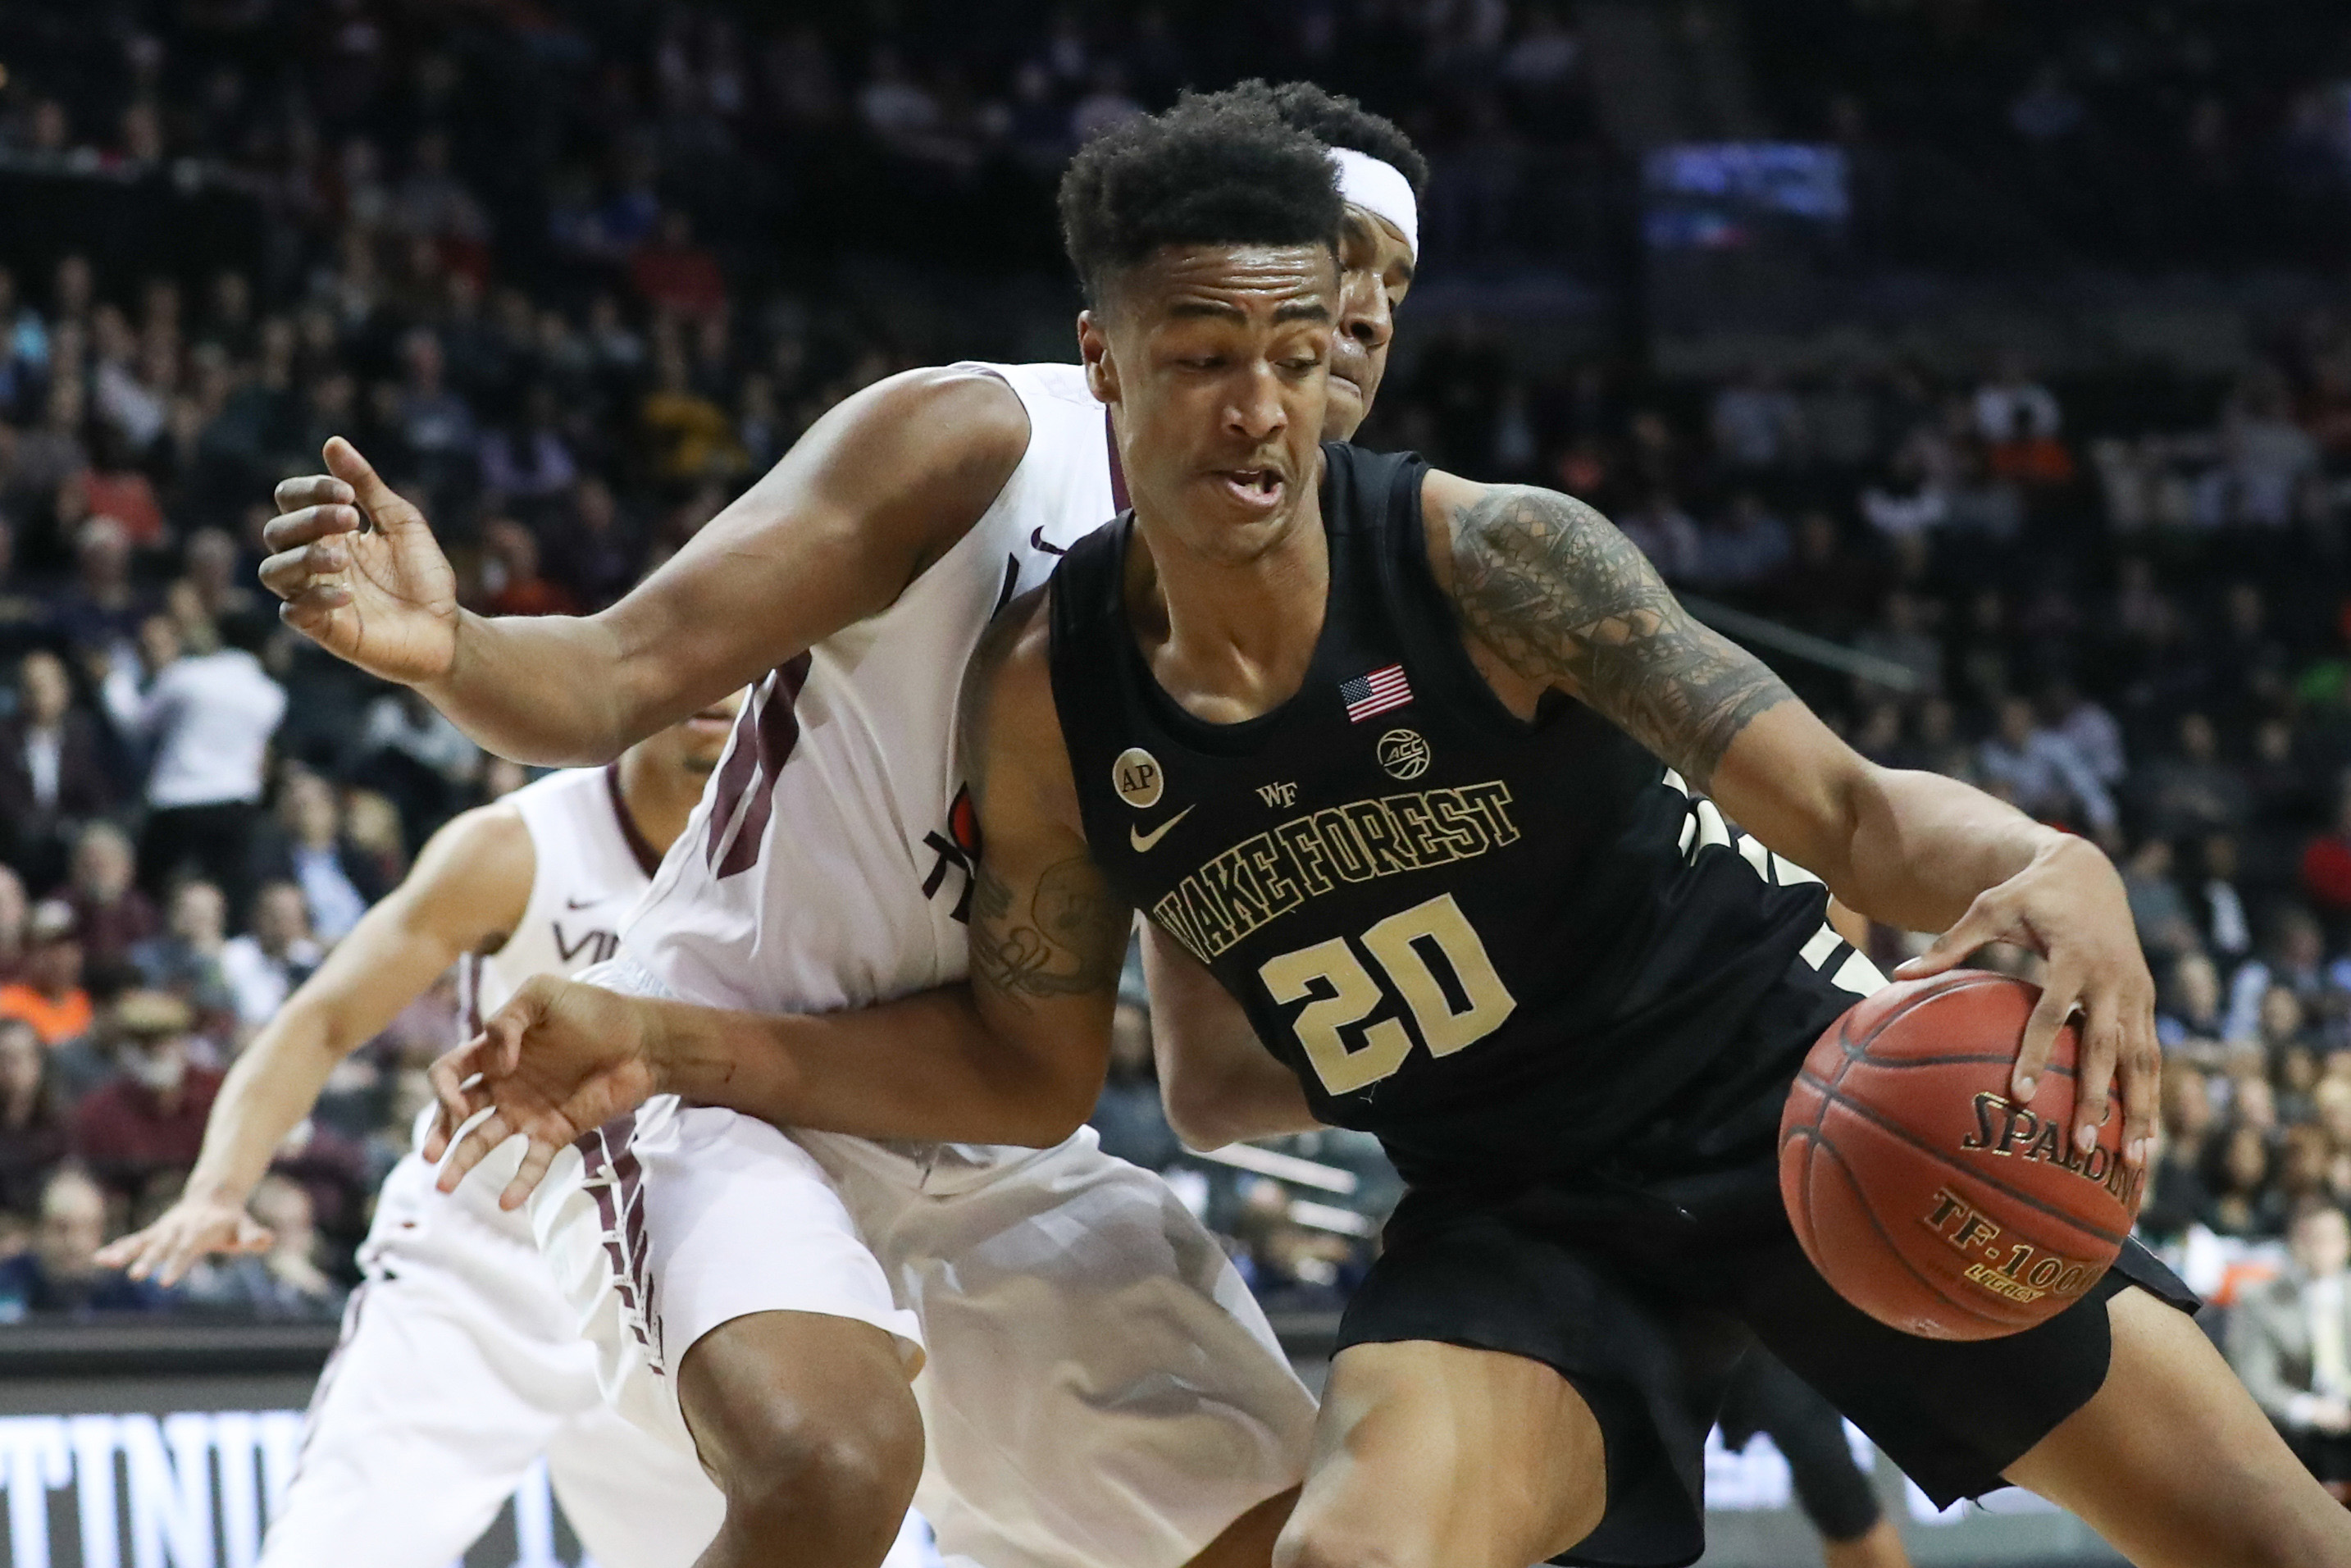 9926351-ncaa-basketball-acc-conference-tournament-virginia-tech-vs-wake-forest-1